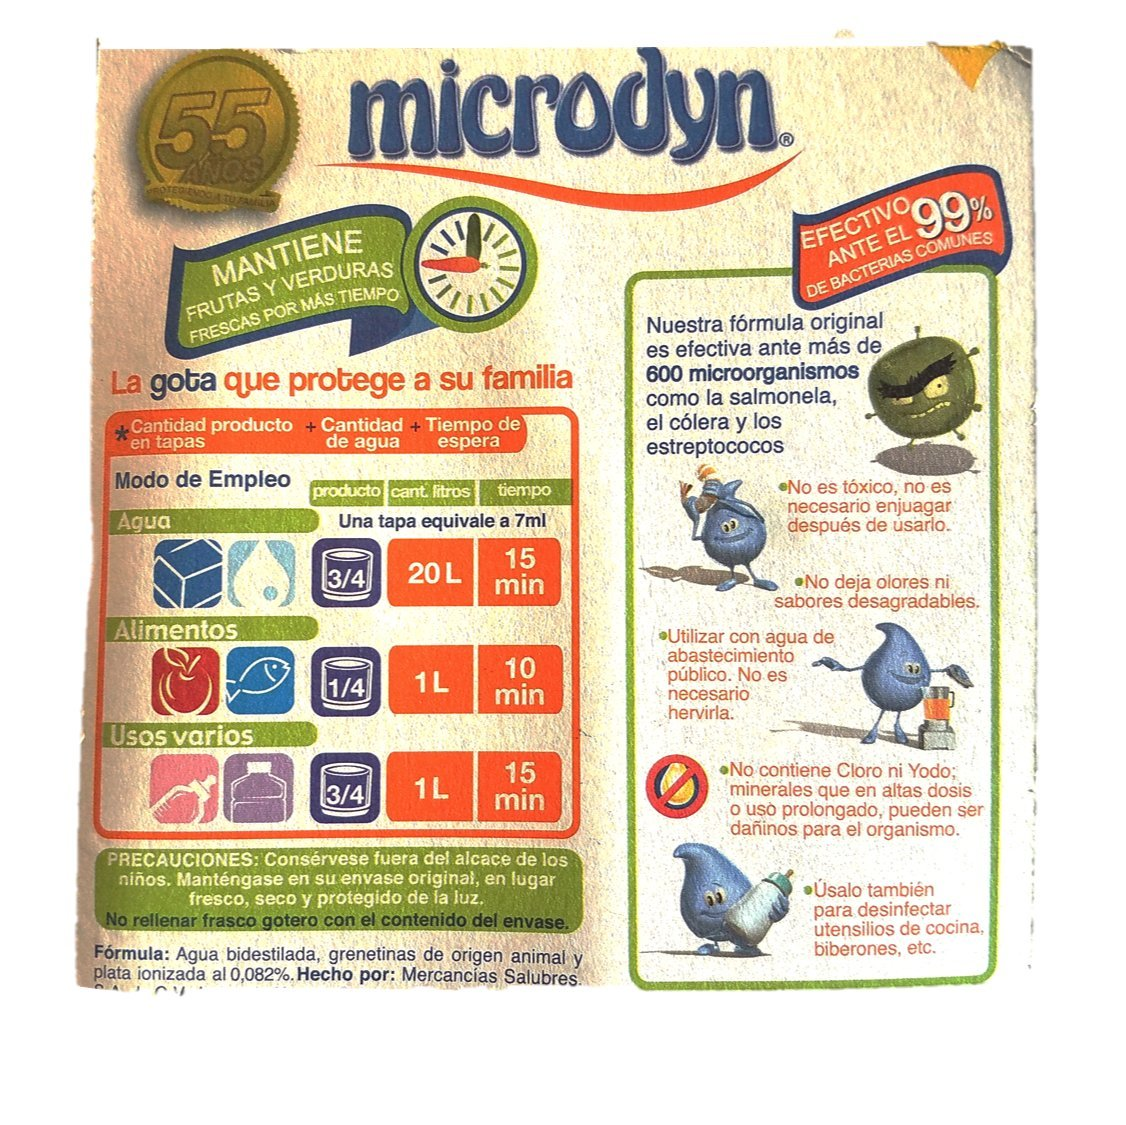 Microdyn Fruit and Vegetable Wash 100ml (Pack of 2) and Especiales Cosas Spatula by Microdyn, Especiales Cosas (Image #2)